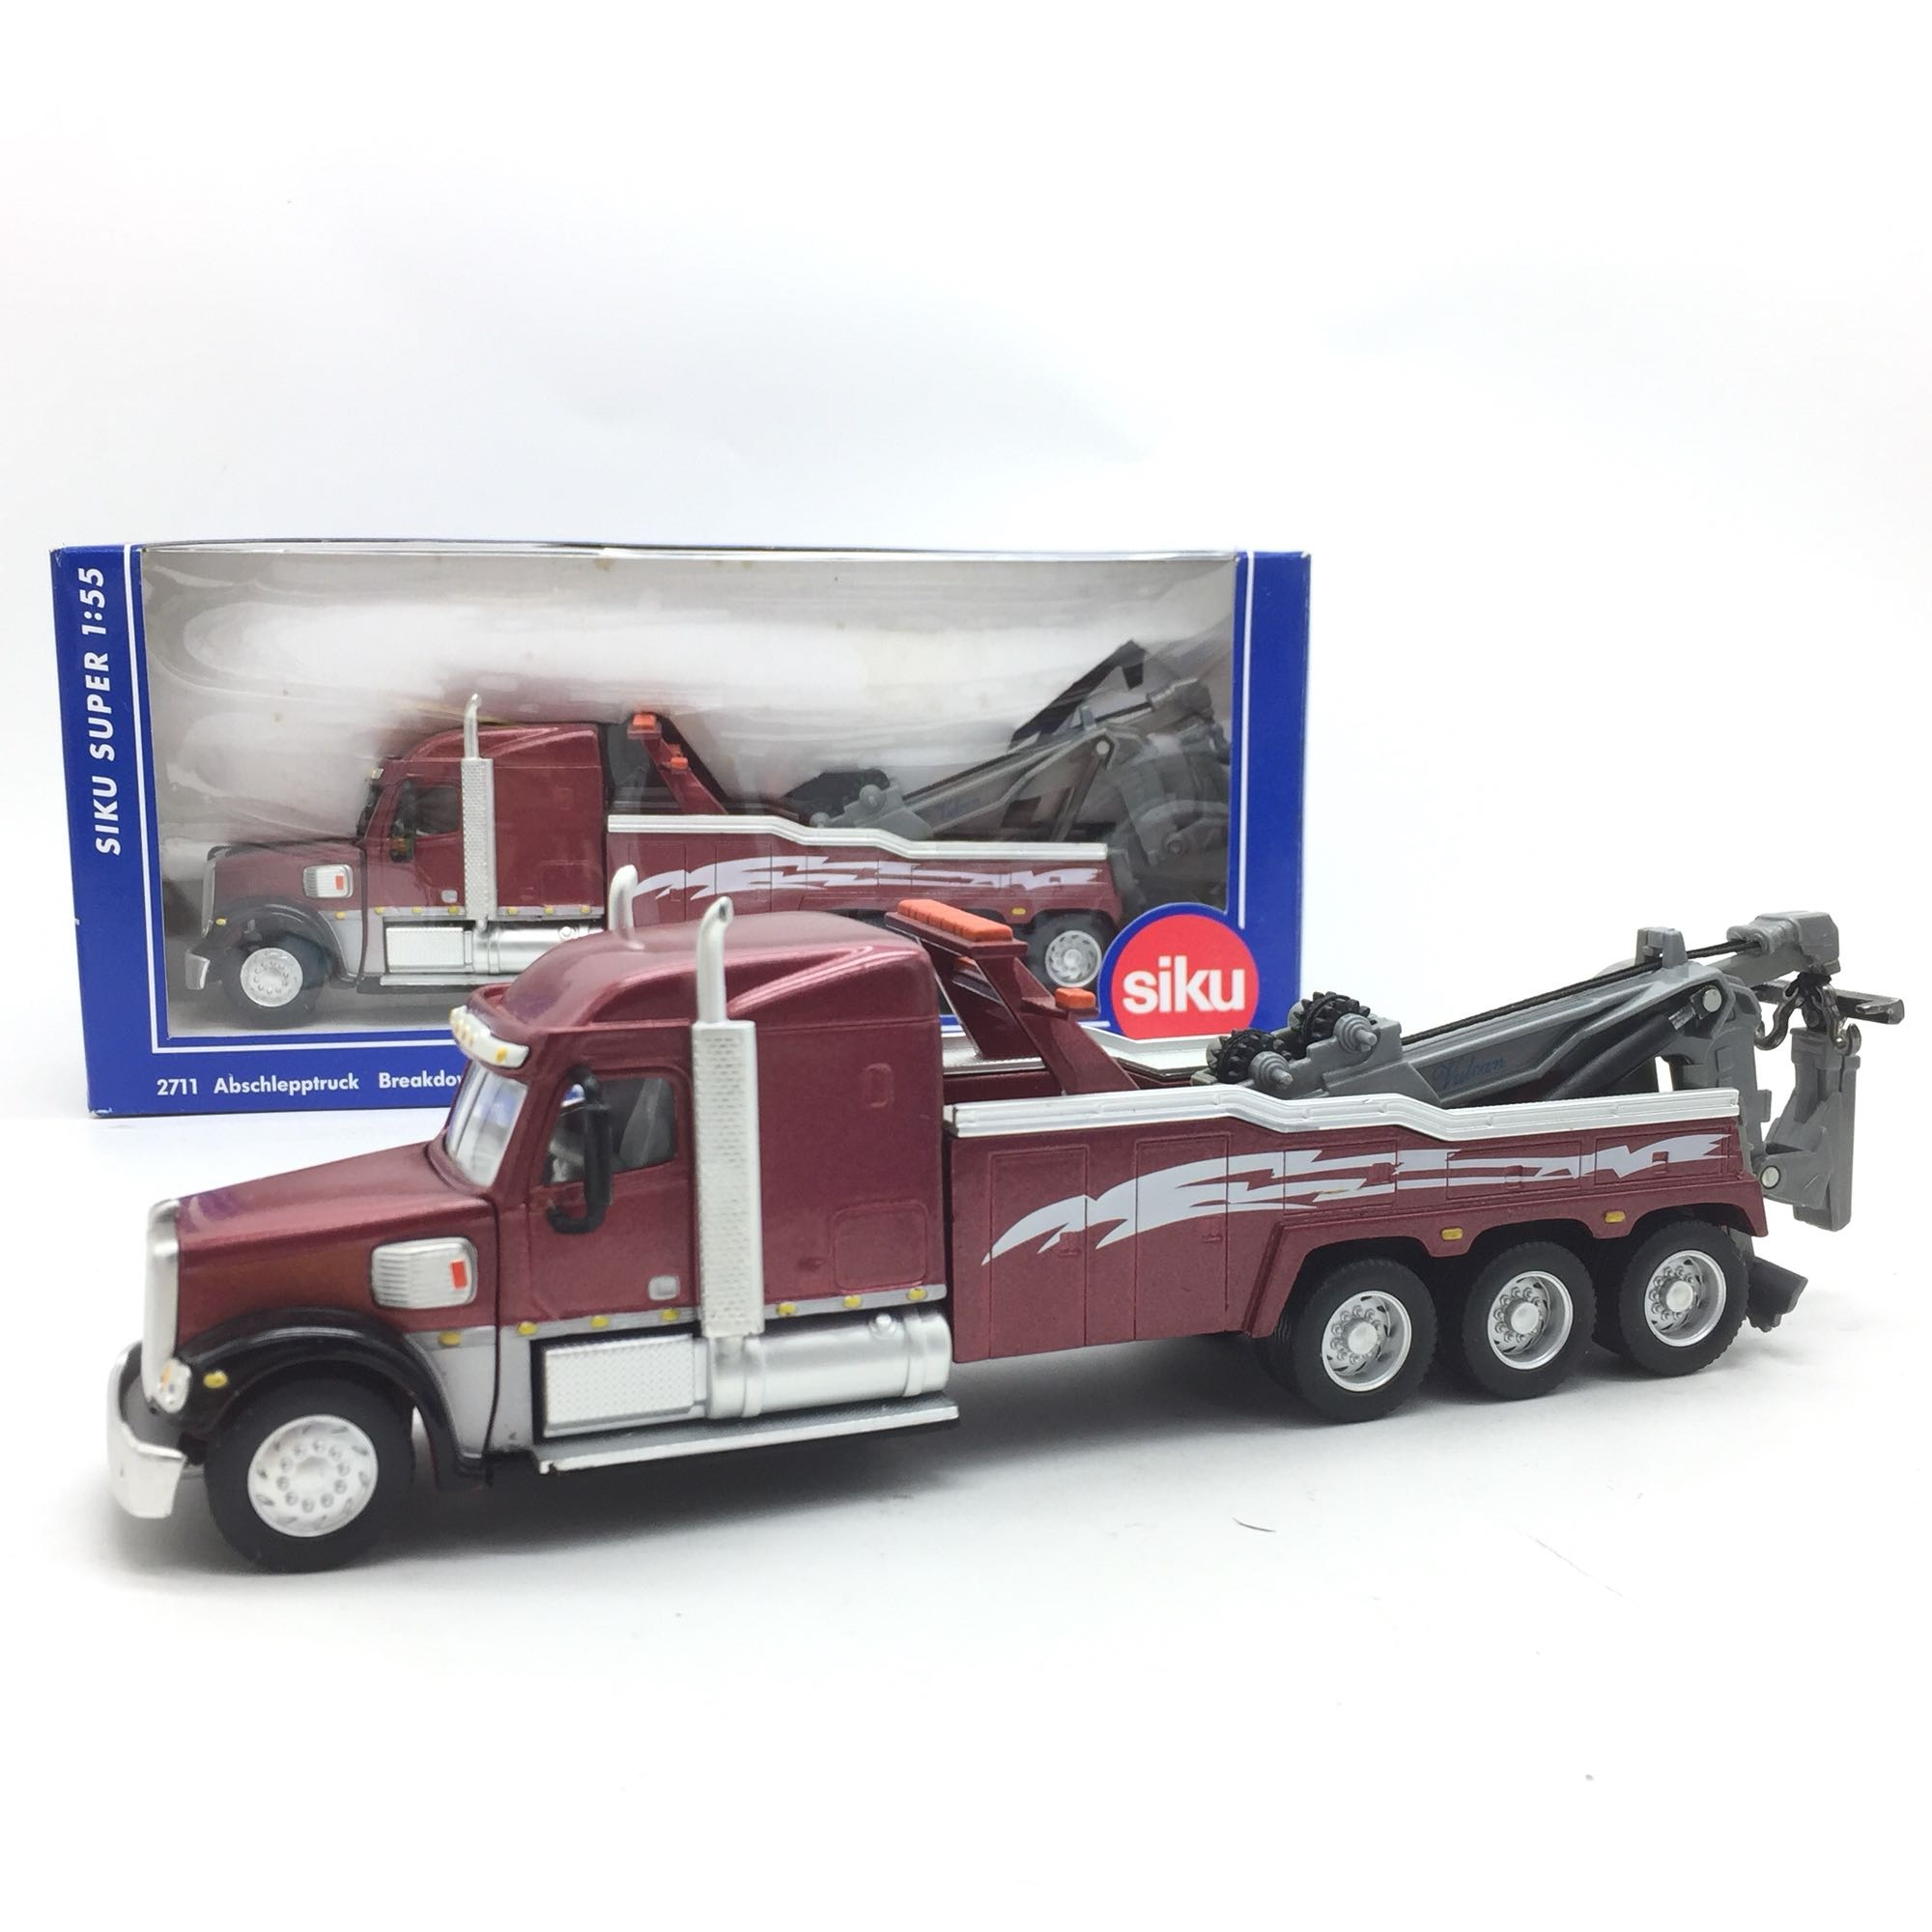 1/55 23cm Old Truck Freightliner Heavy Duty Trailer Alloy Truck Diecast Vehicle Model Collection Of Transport Traffic Tools Show